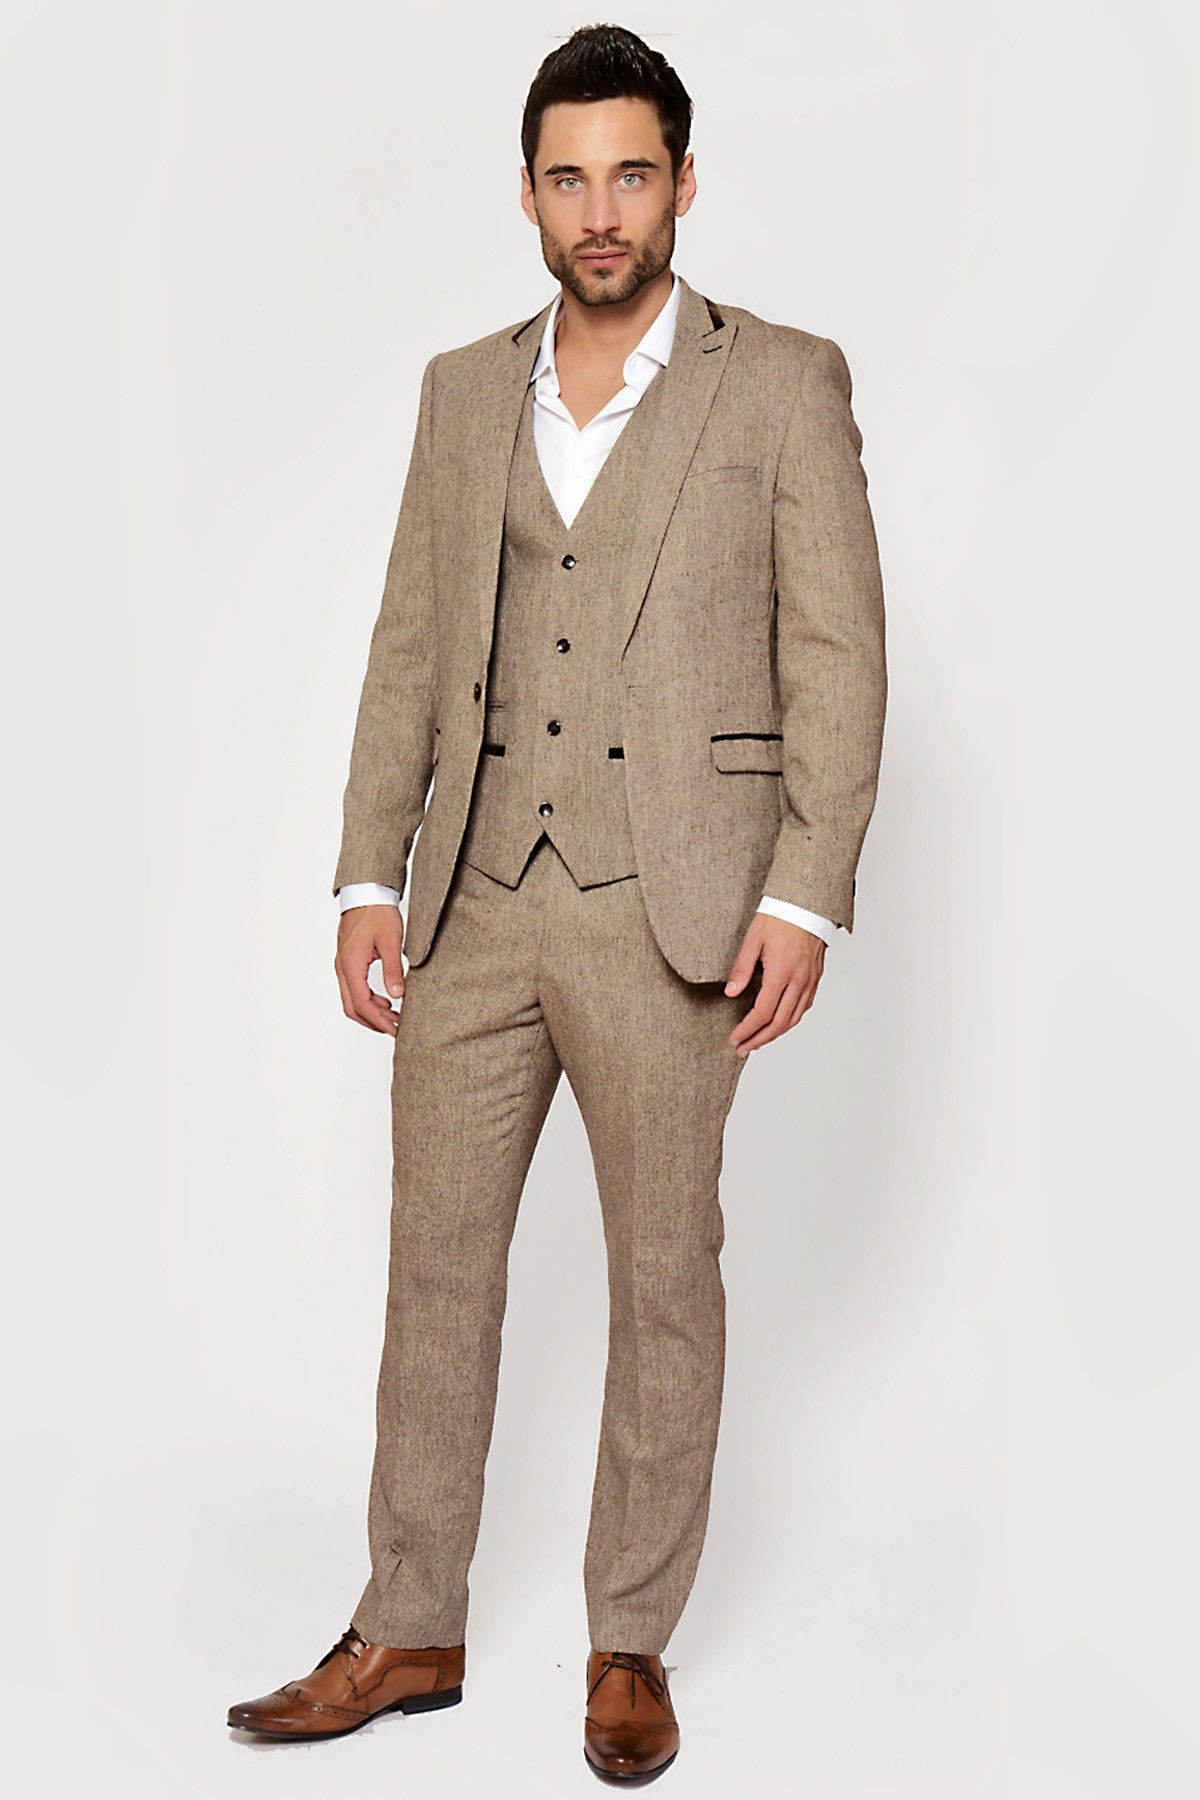 Mens Tan Tweed Three Piece Suit | More of a classic style for men ...